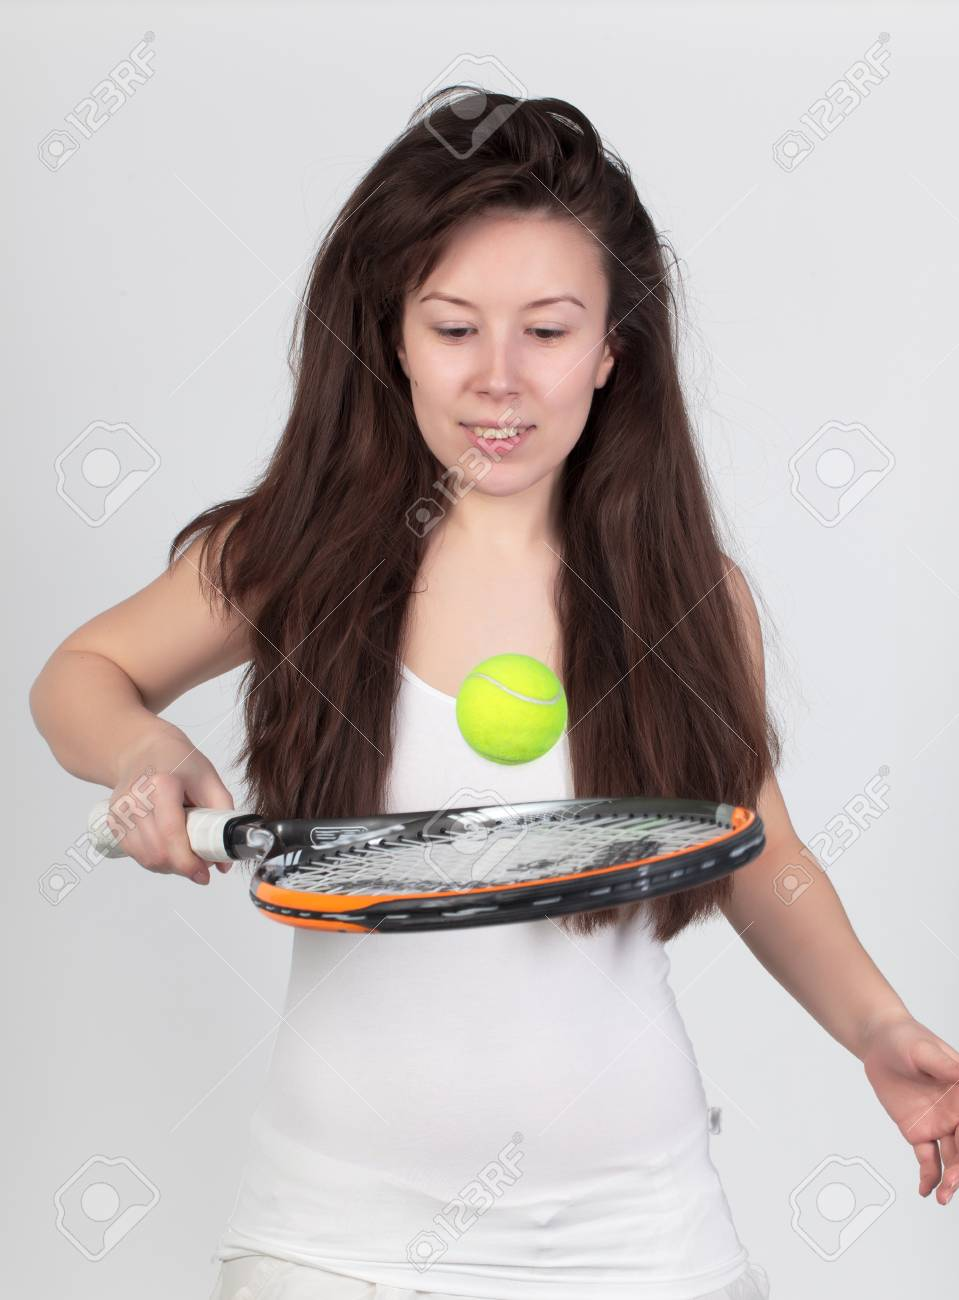 Young woman with tennis racket isolated on white Stock Photo - 12880256